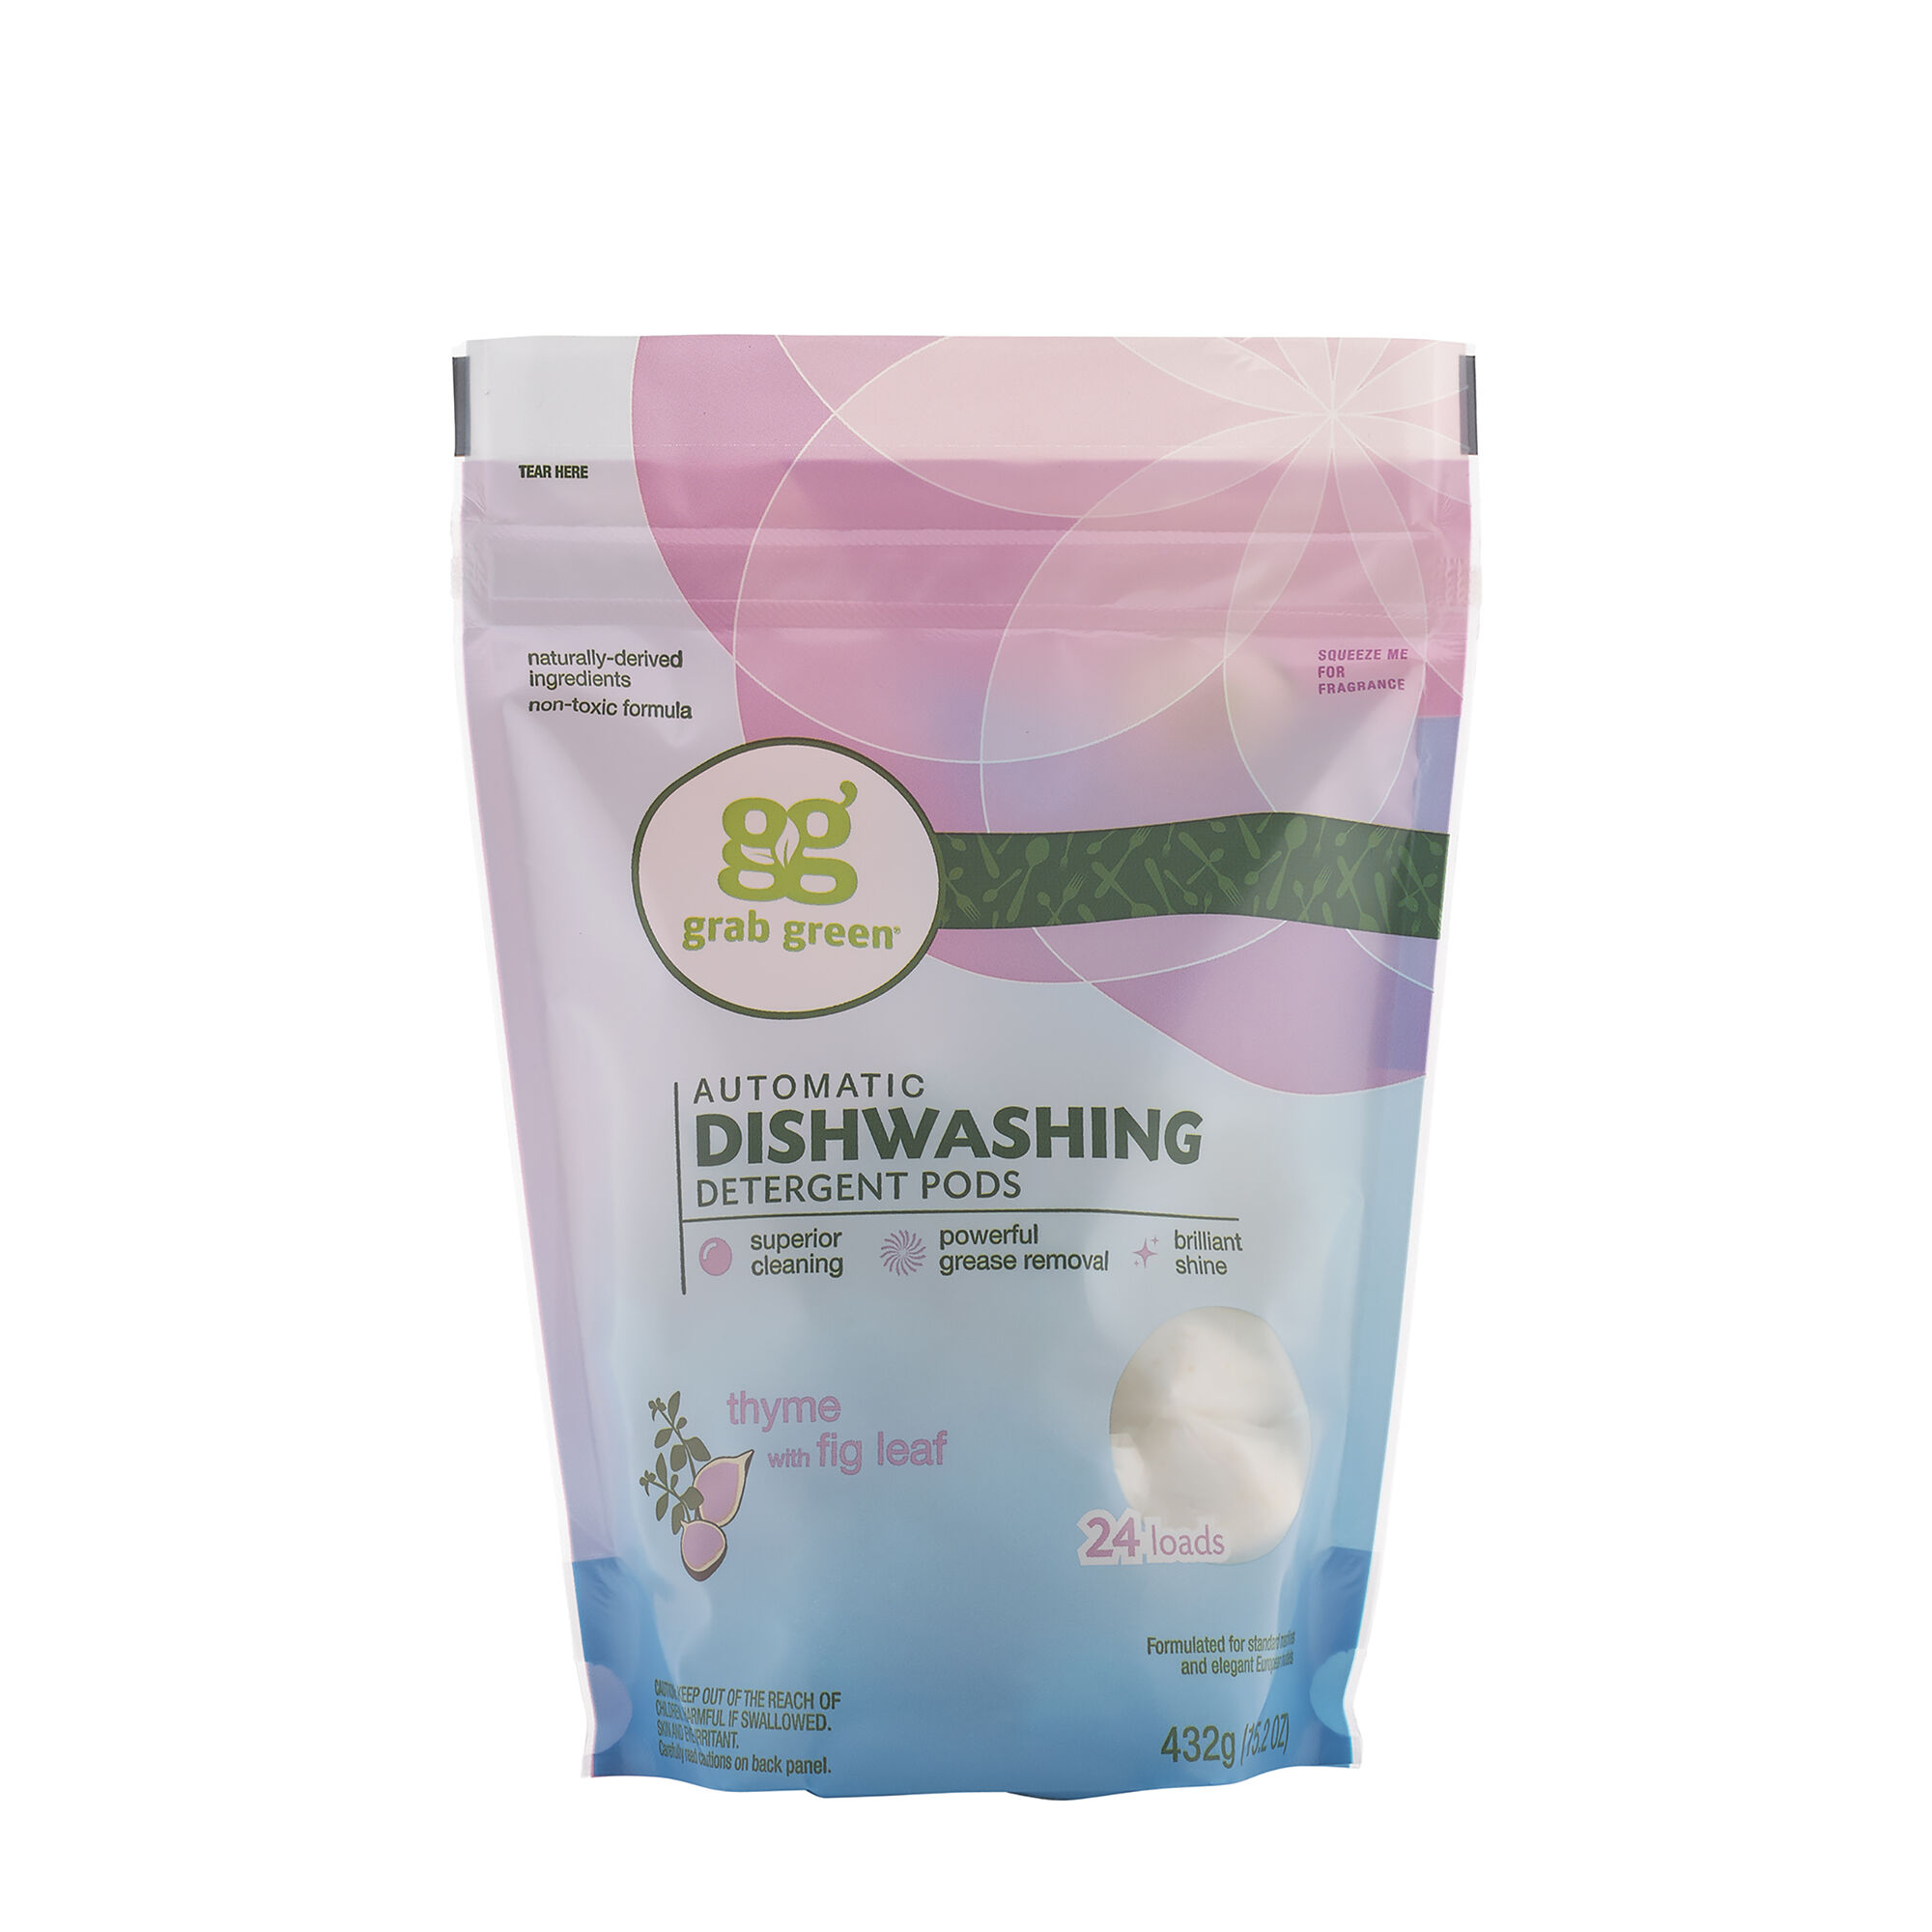 Automatic Dishwashing Detergent Pods Thyme With Fig Leaf 24 Loads Grab GreenNatural Cleaning Products